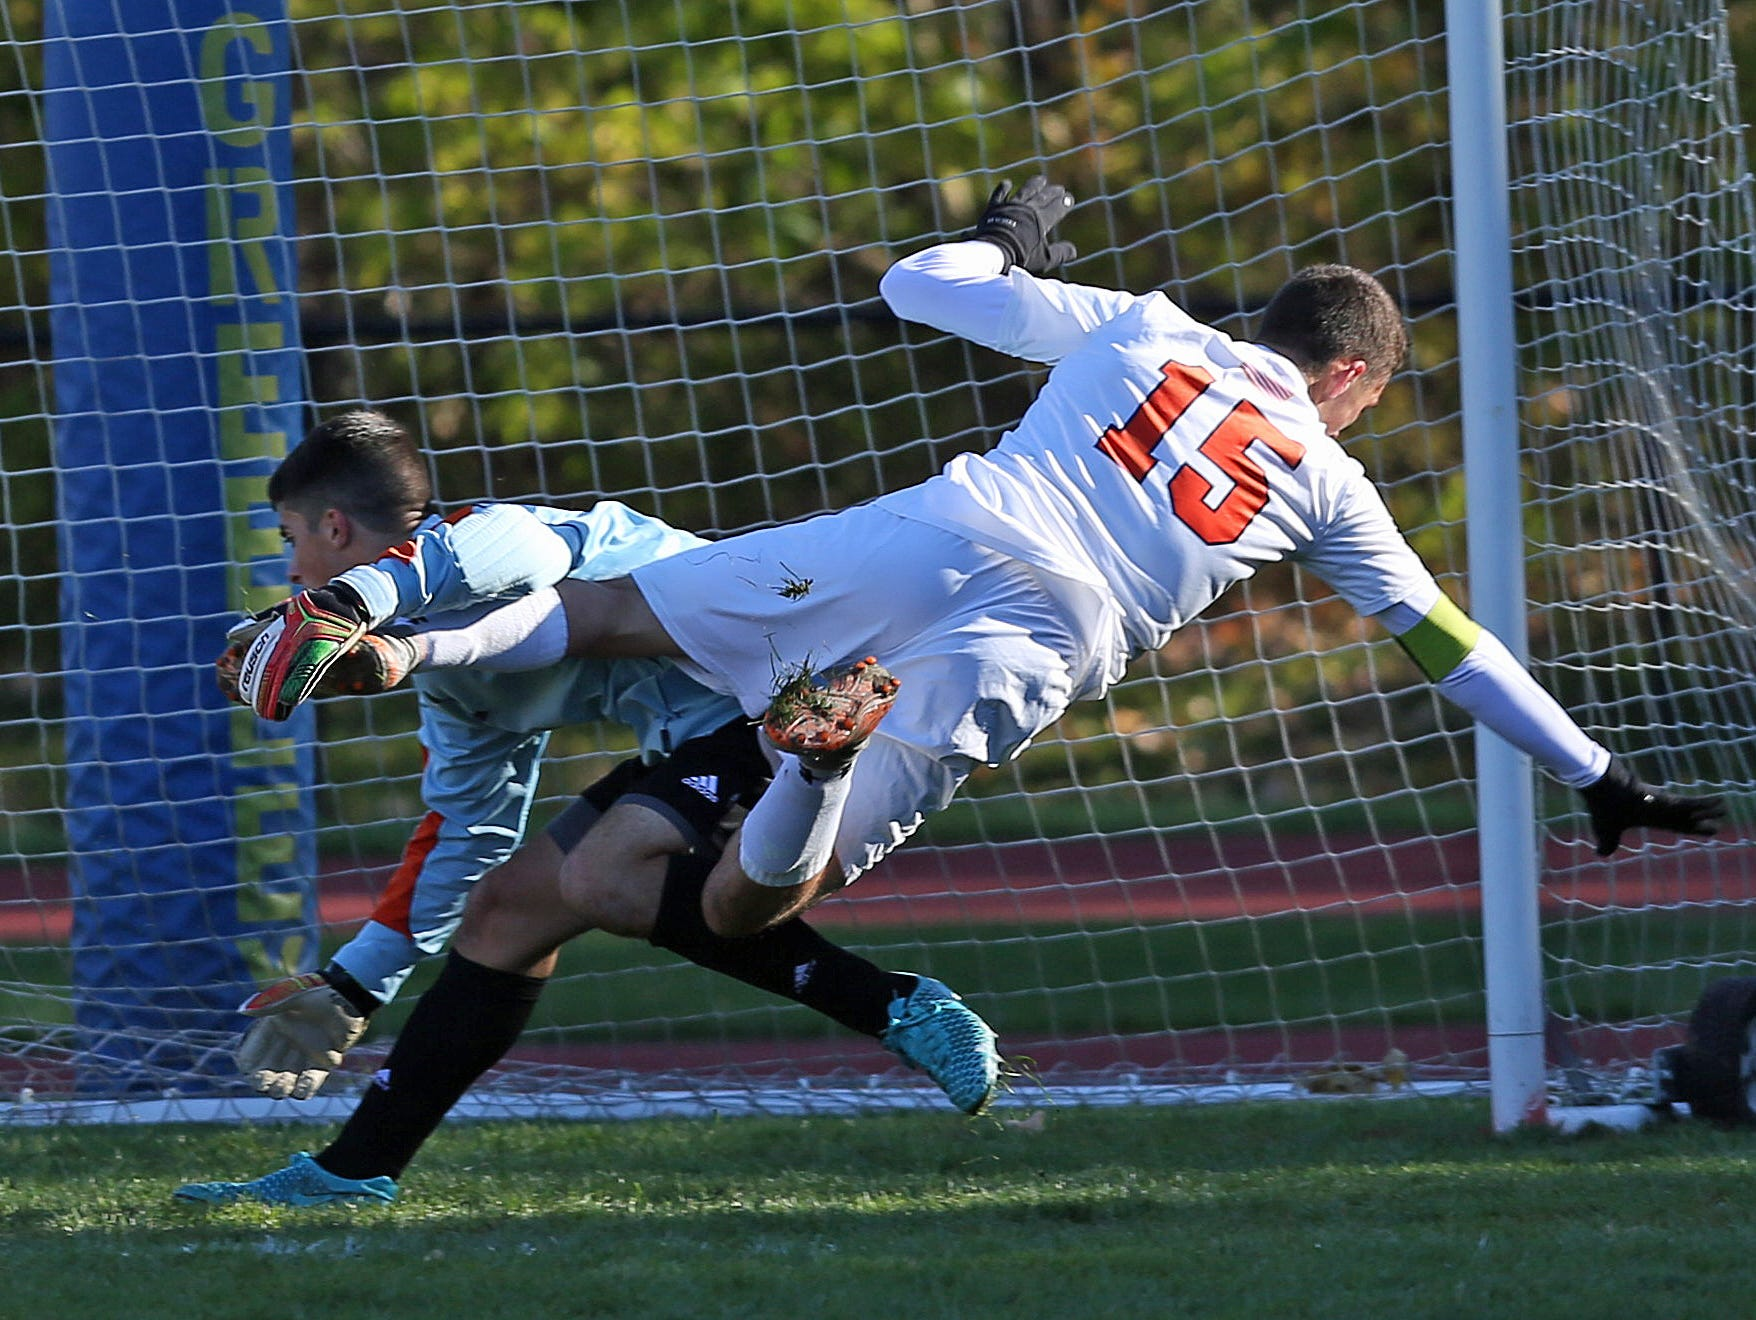 Greeley's Matt Neuberger (15) flips over North Rockland goal keeper Julio Rebolledo as he score his third of three first half goals during a boys soccer playoff game at Horace Greeley High School in Chappaqua Oct. 23, 2015.